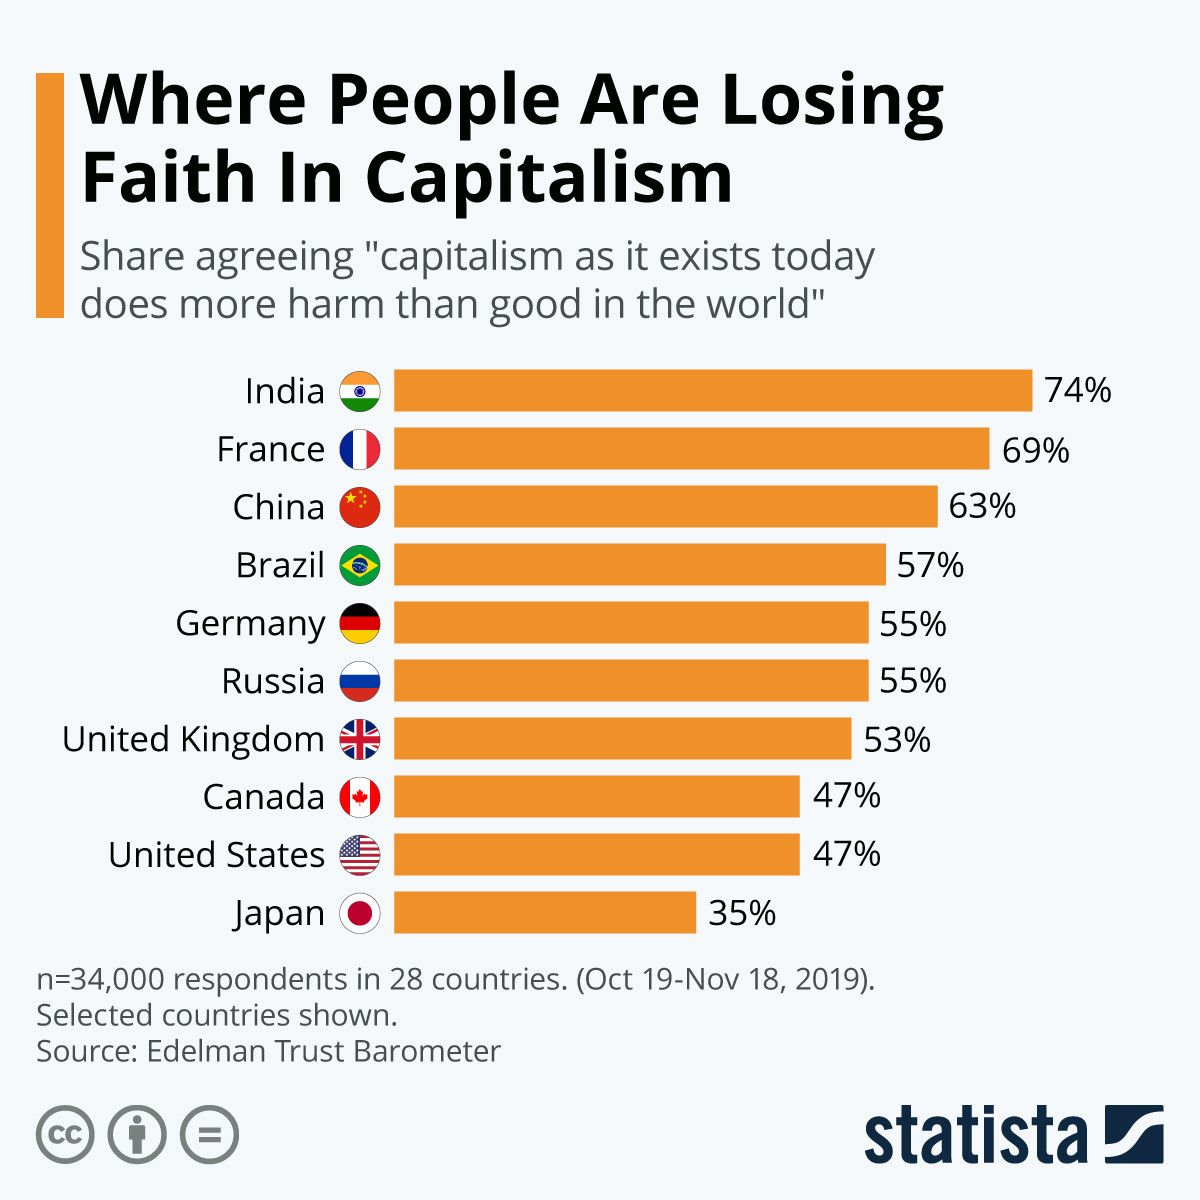 These countries think capitalism does more harm than good https://wef.ch/37gzmJL #economics #finance pic.twitter.com/OsNcjalpjE